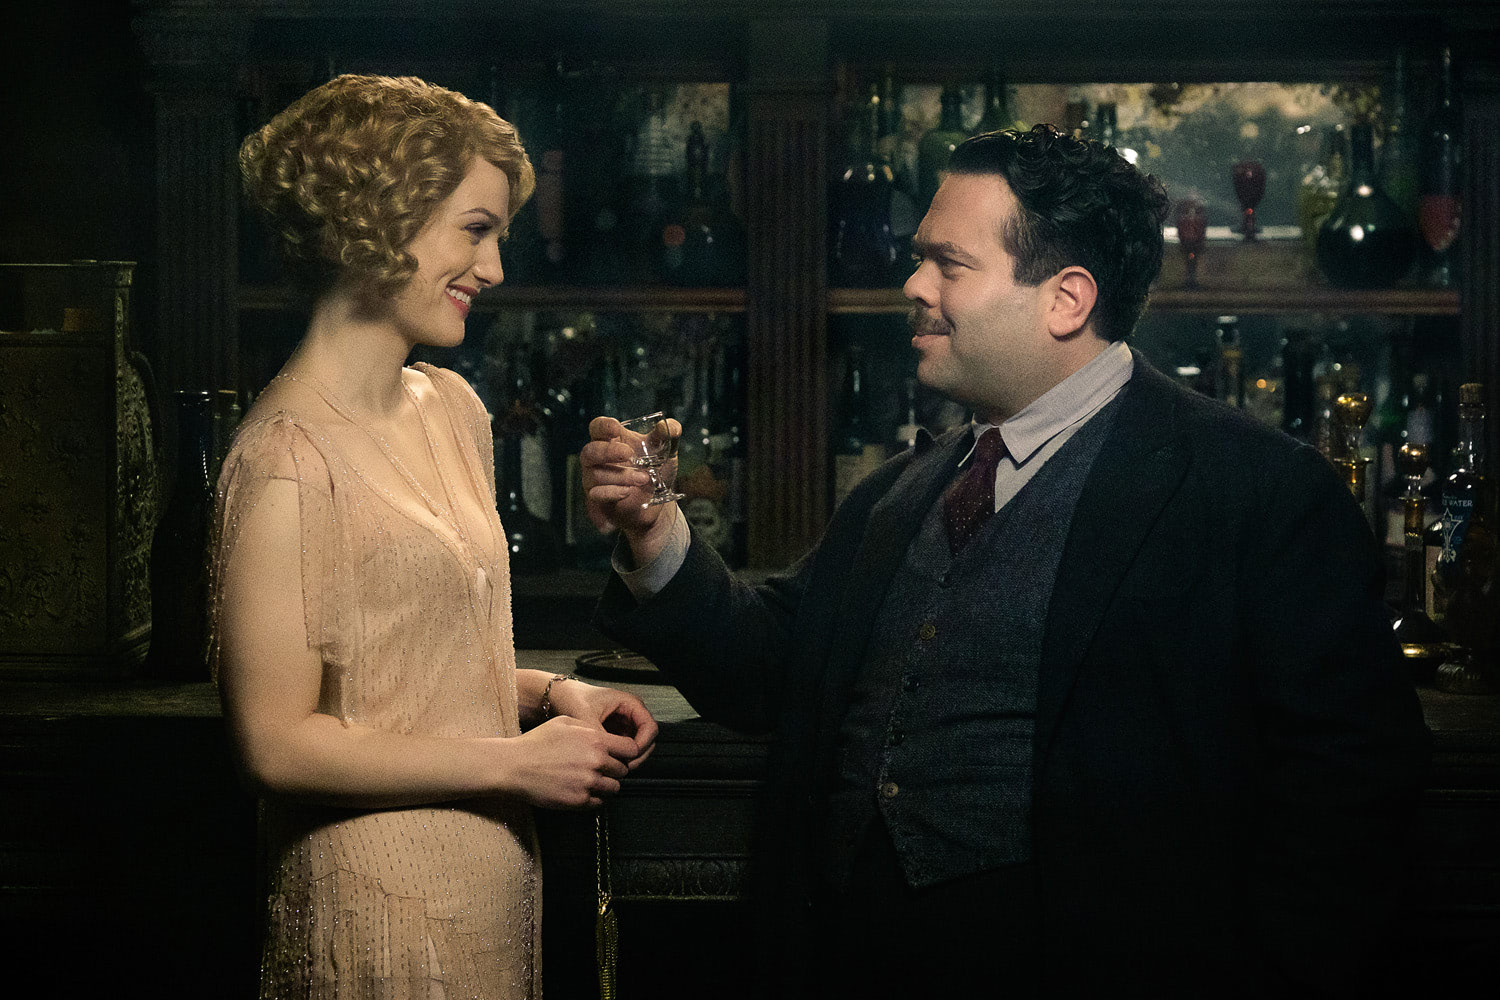 A toast to Queenie and Jacob